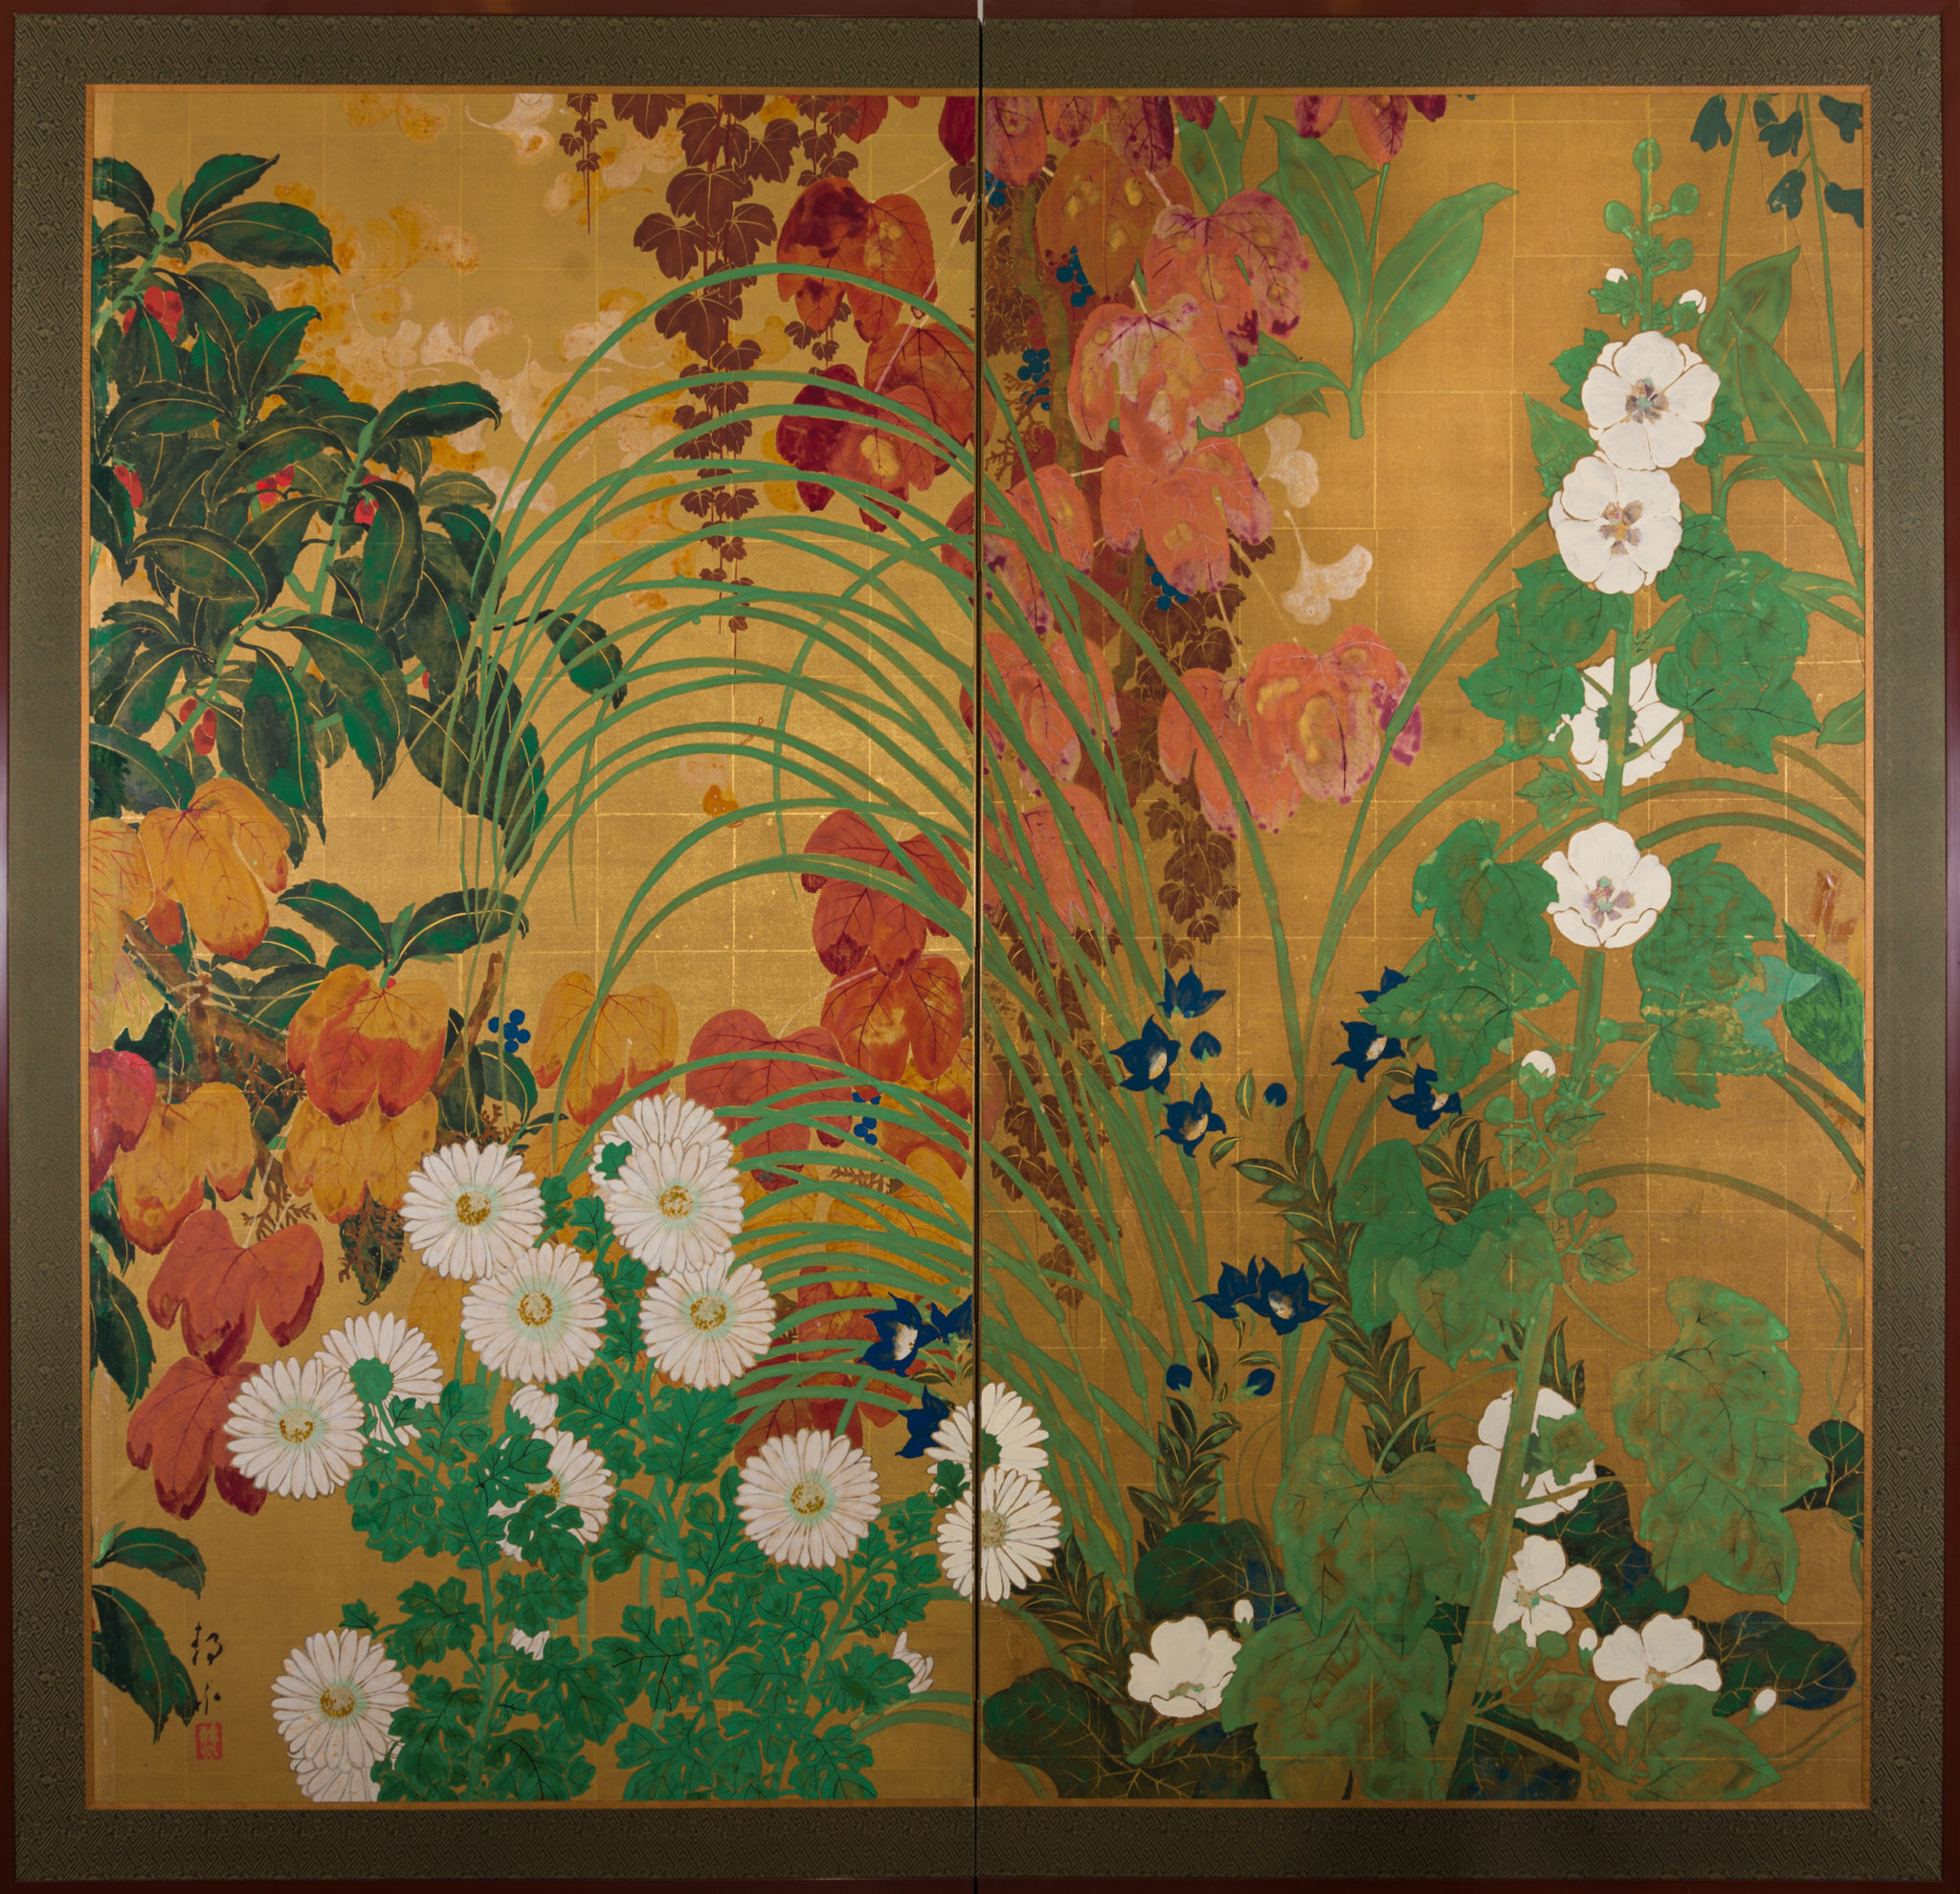 Japanese Two Panel Screen: Late Summer Into Fall